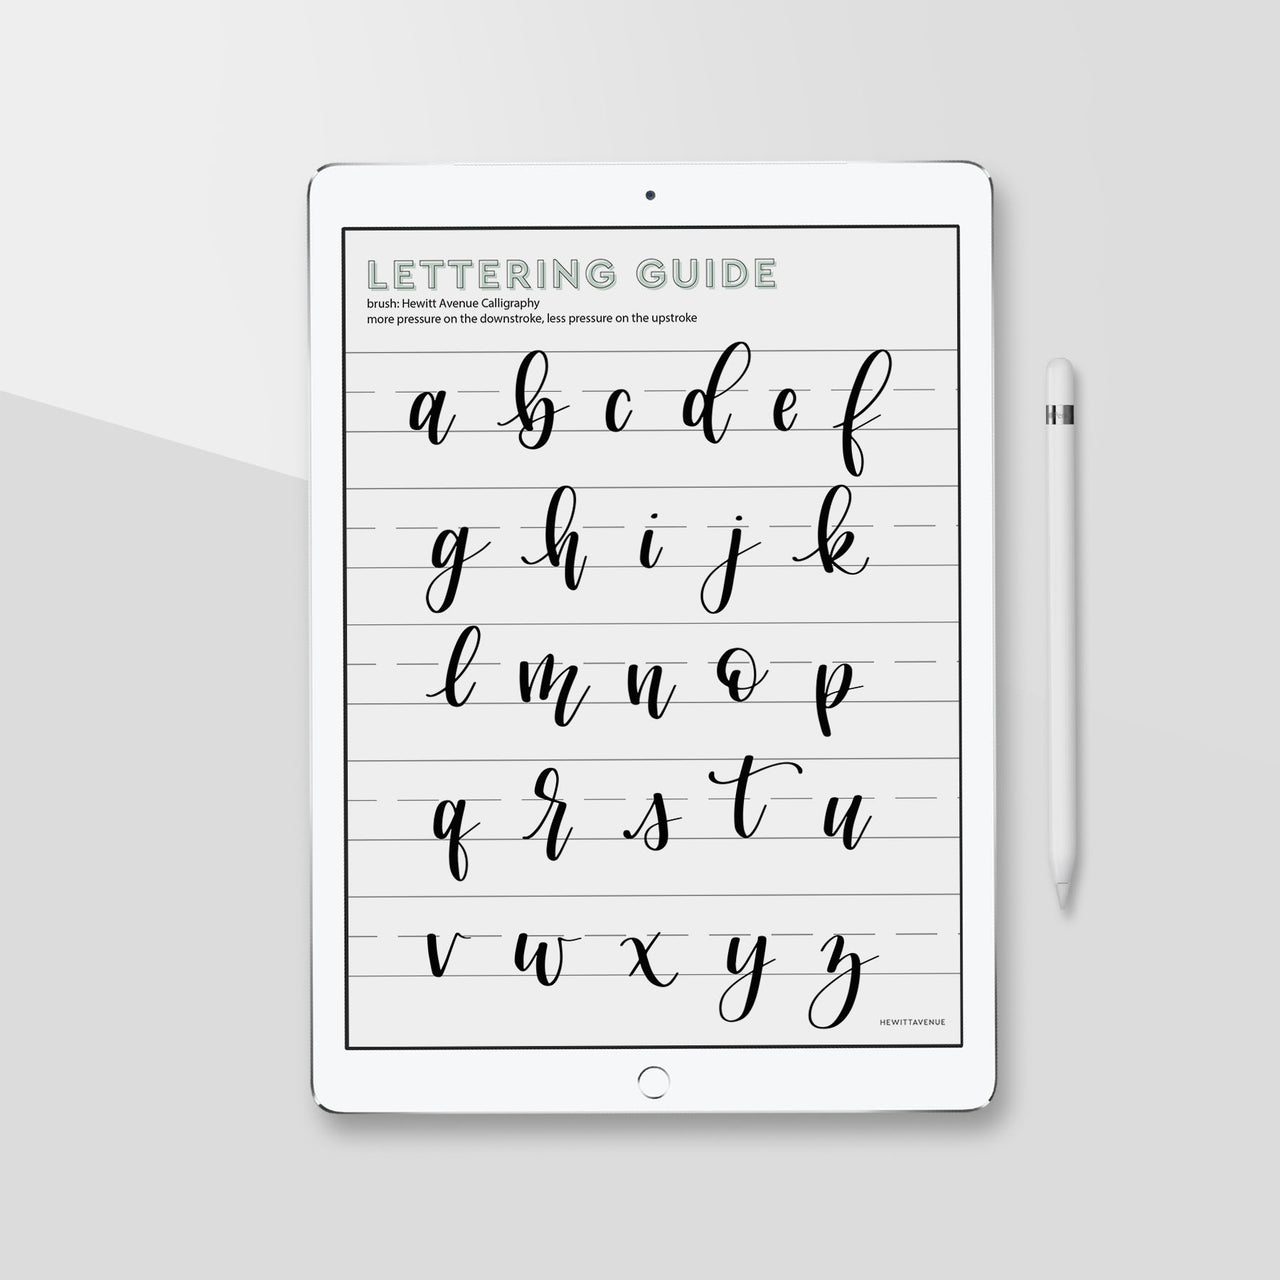 Lowercase Brush Lettering Guide, iPad Lettering, Procreate App, Learn Calligraphy - Hewitt Avenue